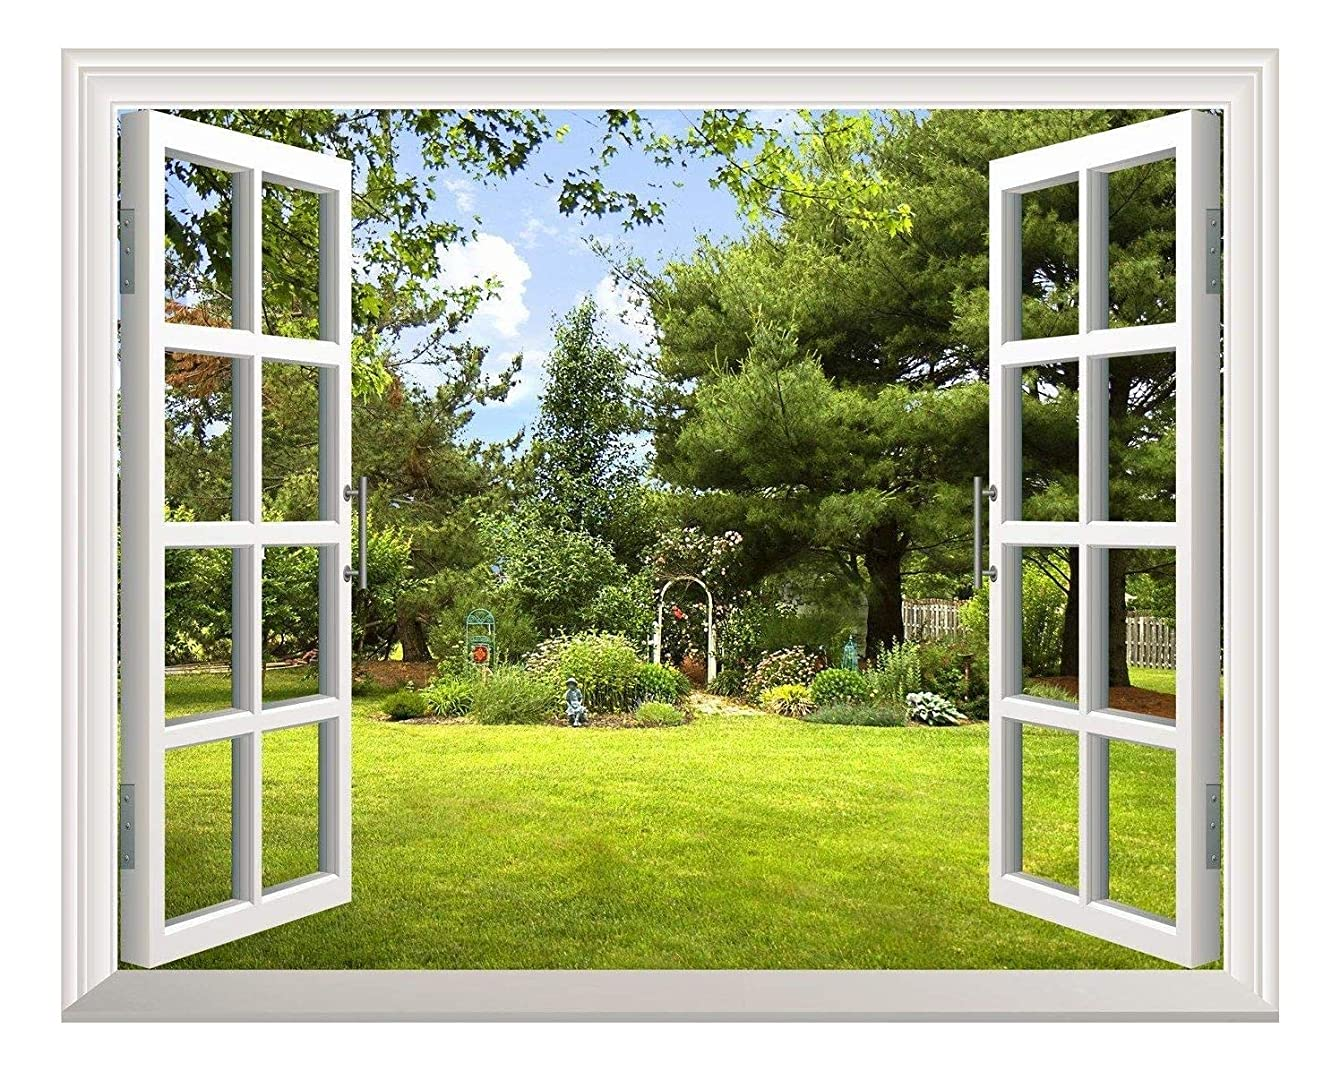 wall26 Removable Wall Sticker/Wall Mural -Beautiful Garden View Out of The Open Window Creative Wall Decor - 24